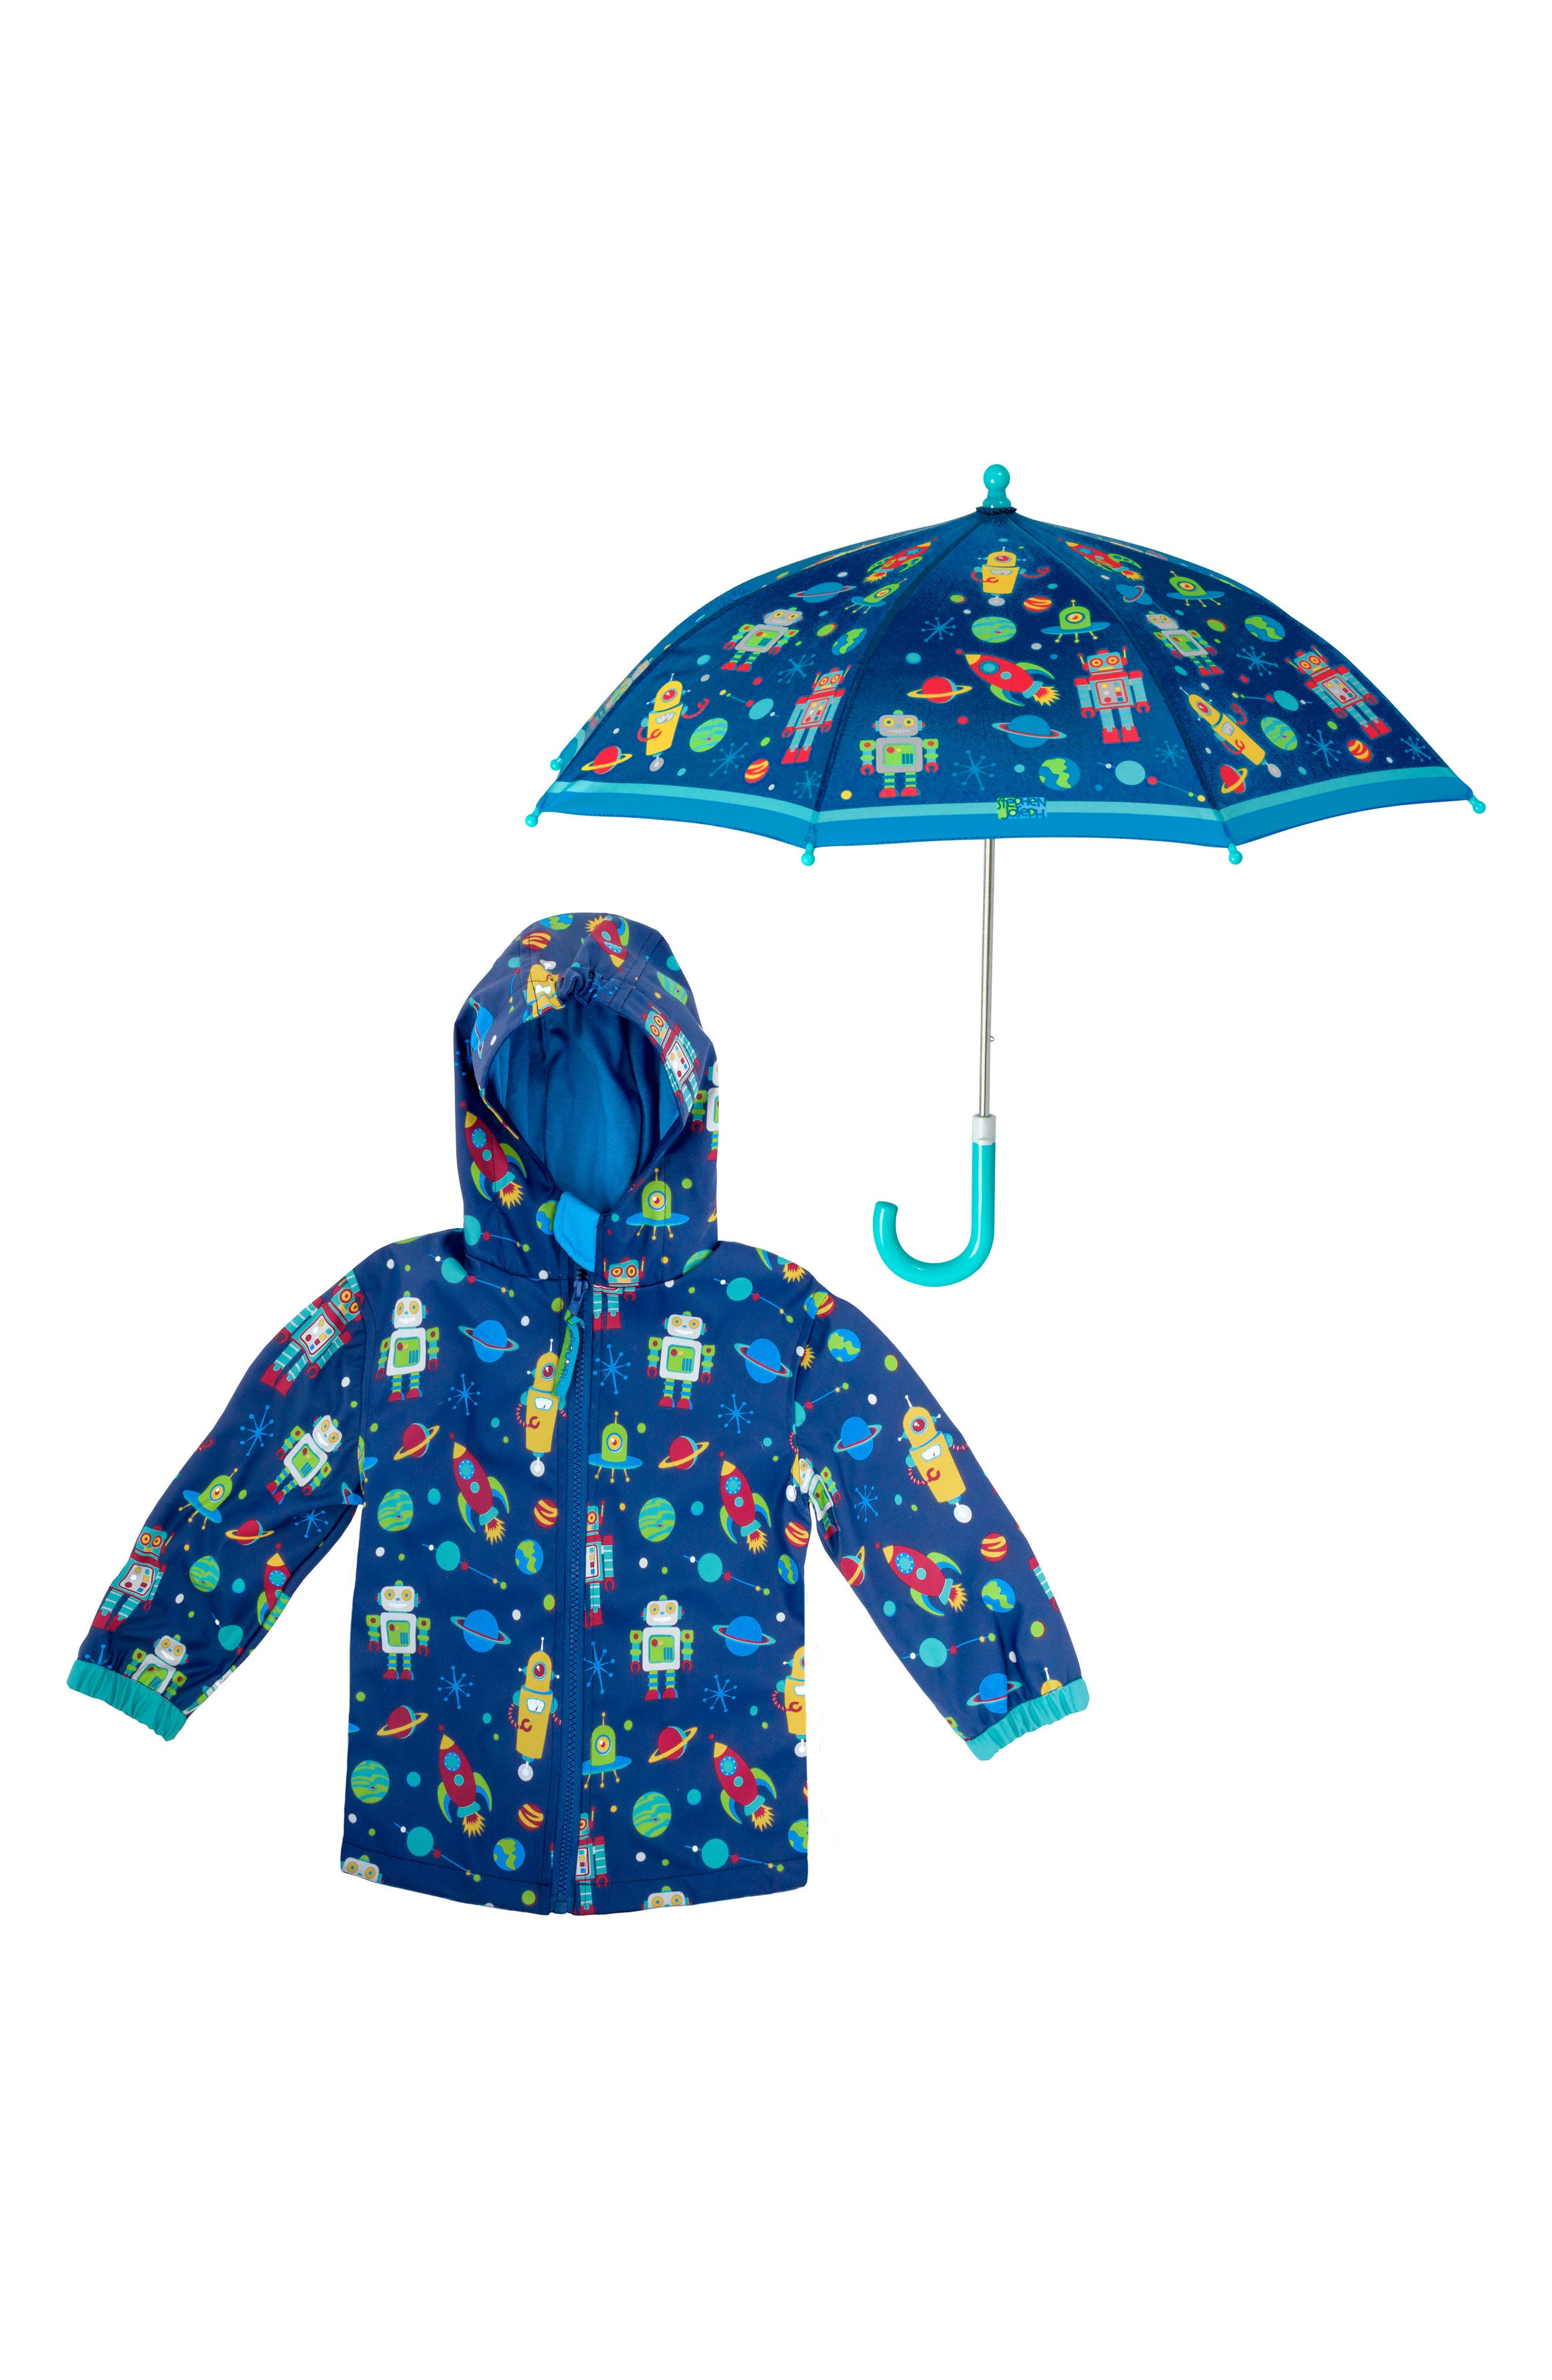 Robot Raincoat & Umbrella Set,                             Main thumbnail 1, color,                             Robot